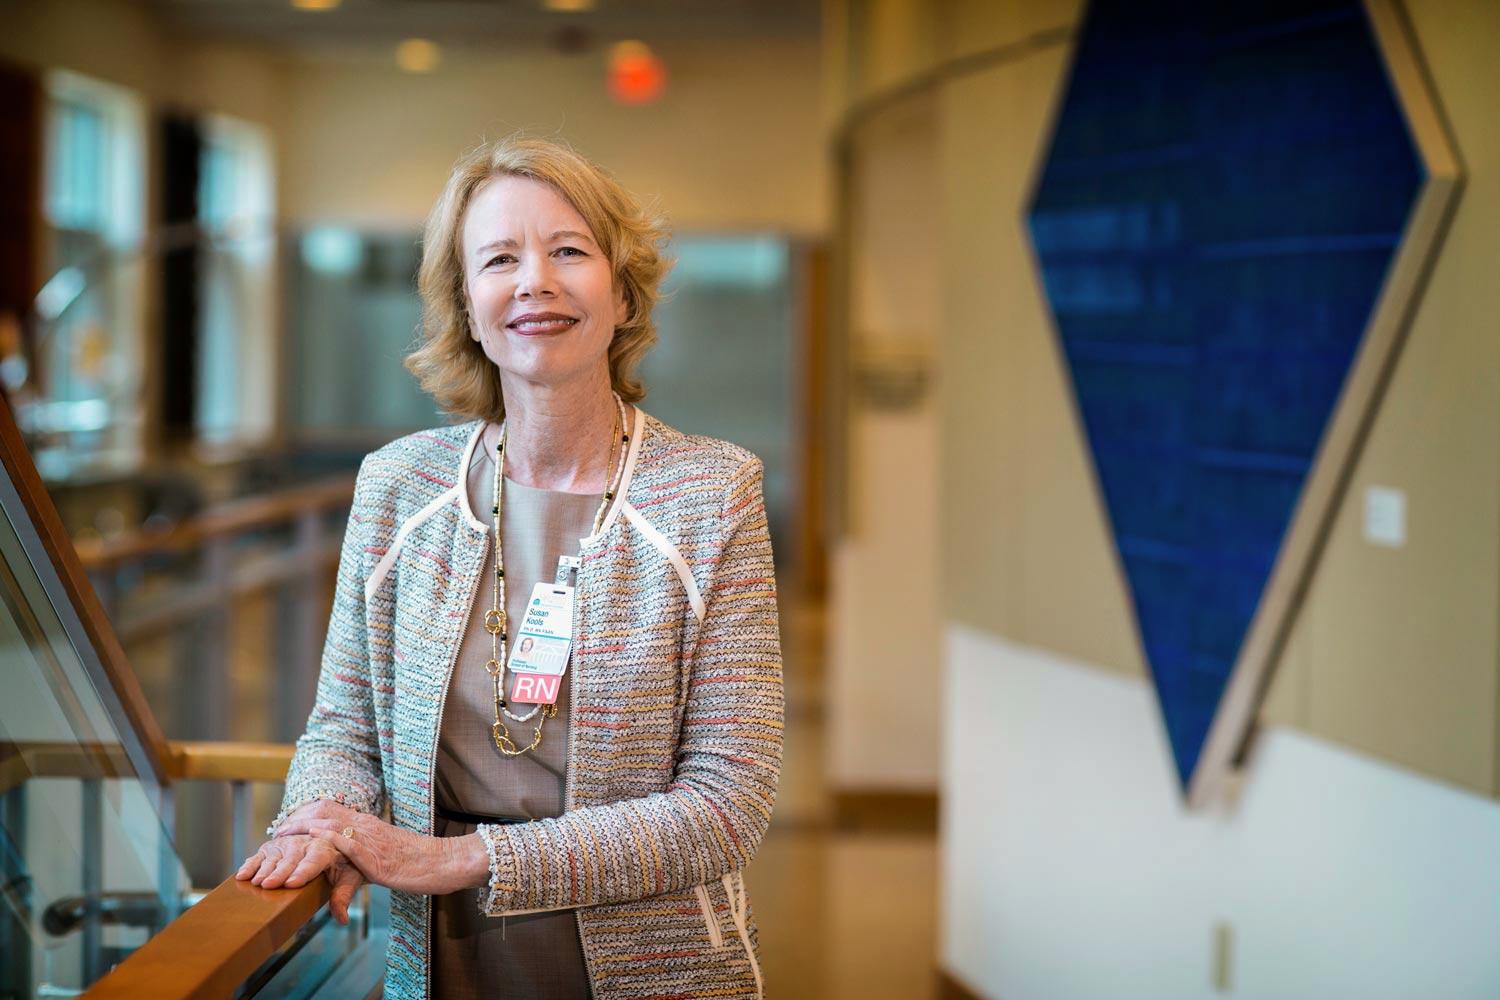 Susan Kools, associate dean for diversity and inclusion in the School of Nursing, and Gates organized UVA's participation in the institute.